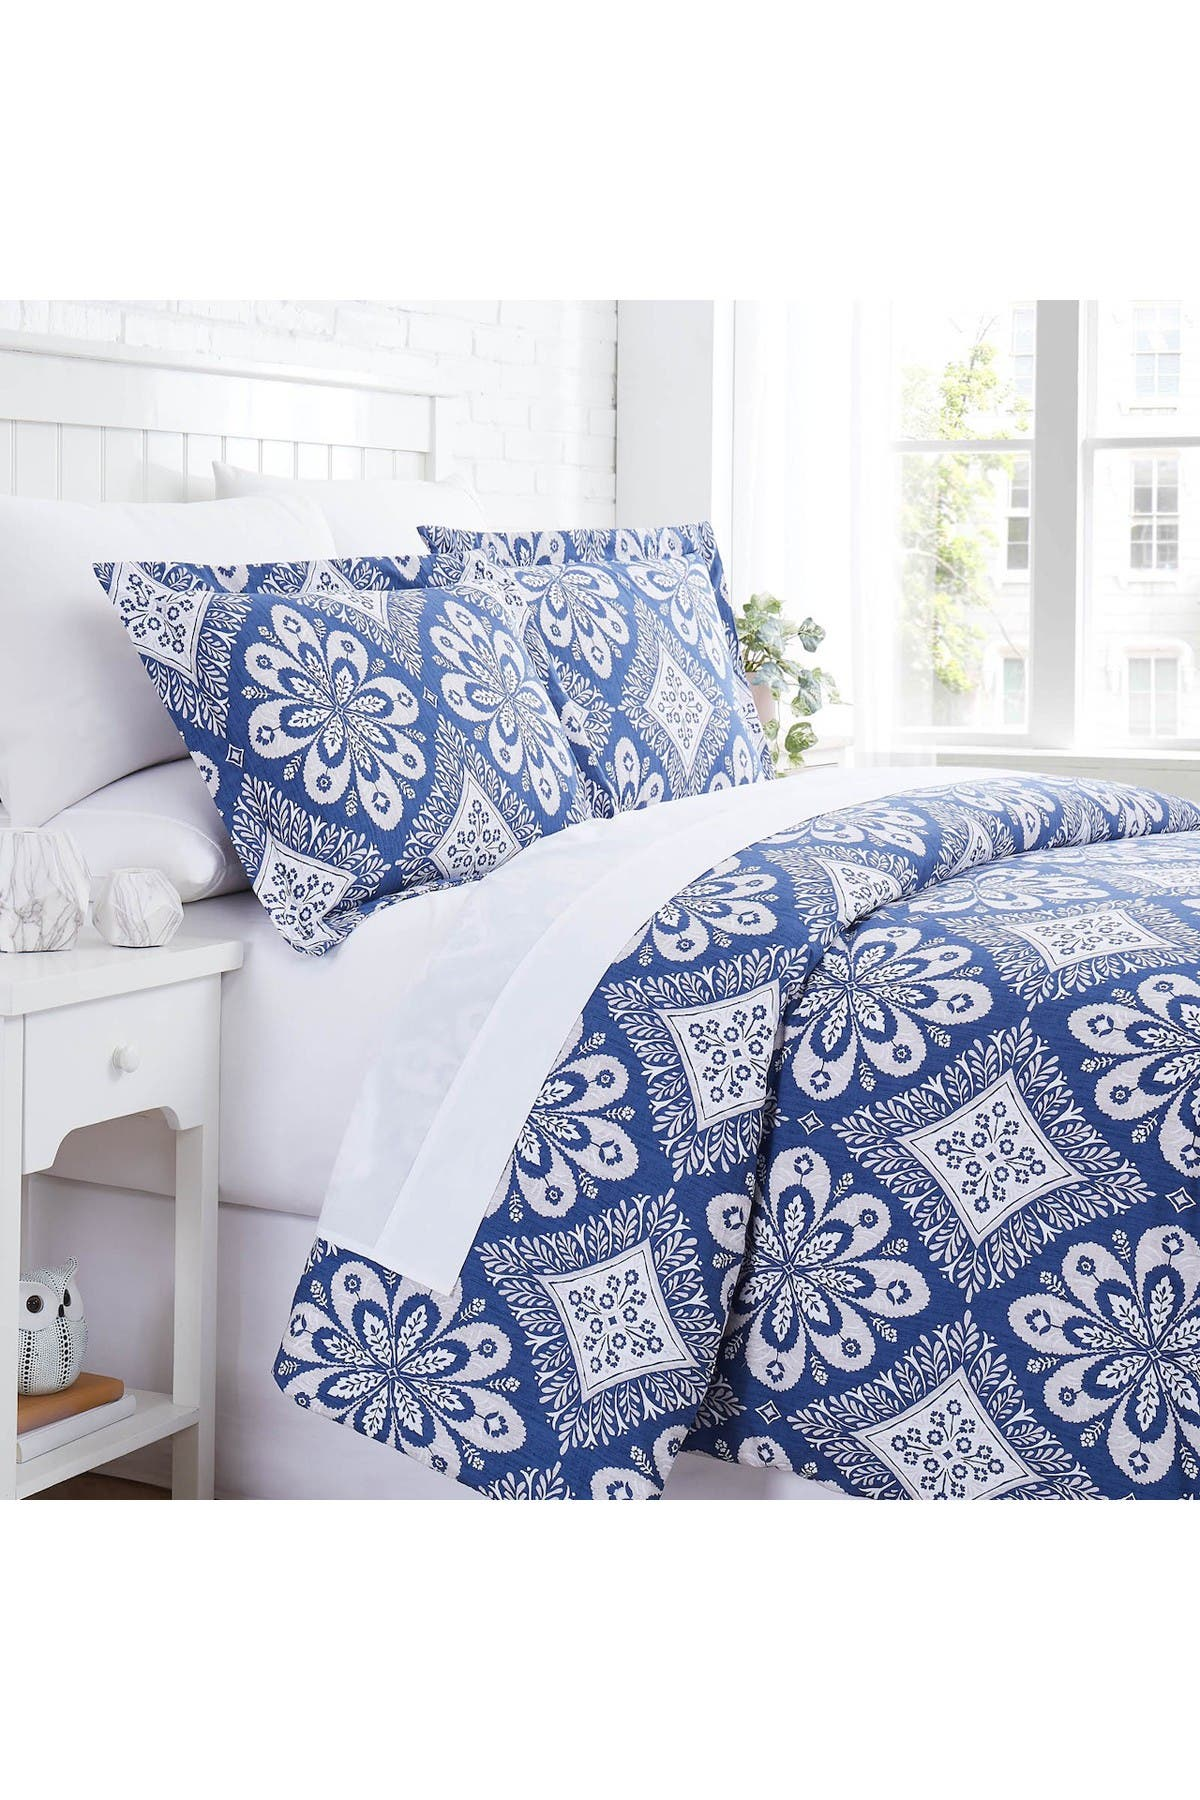 Image of SOUTHSHORE FINE LINENS Tranquility Duvet Cover Set - Blue - King/California King